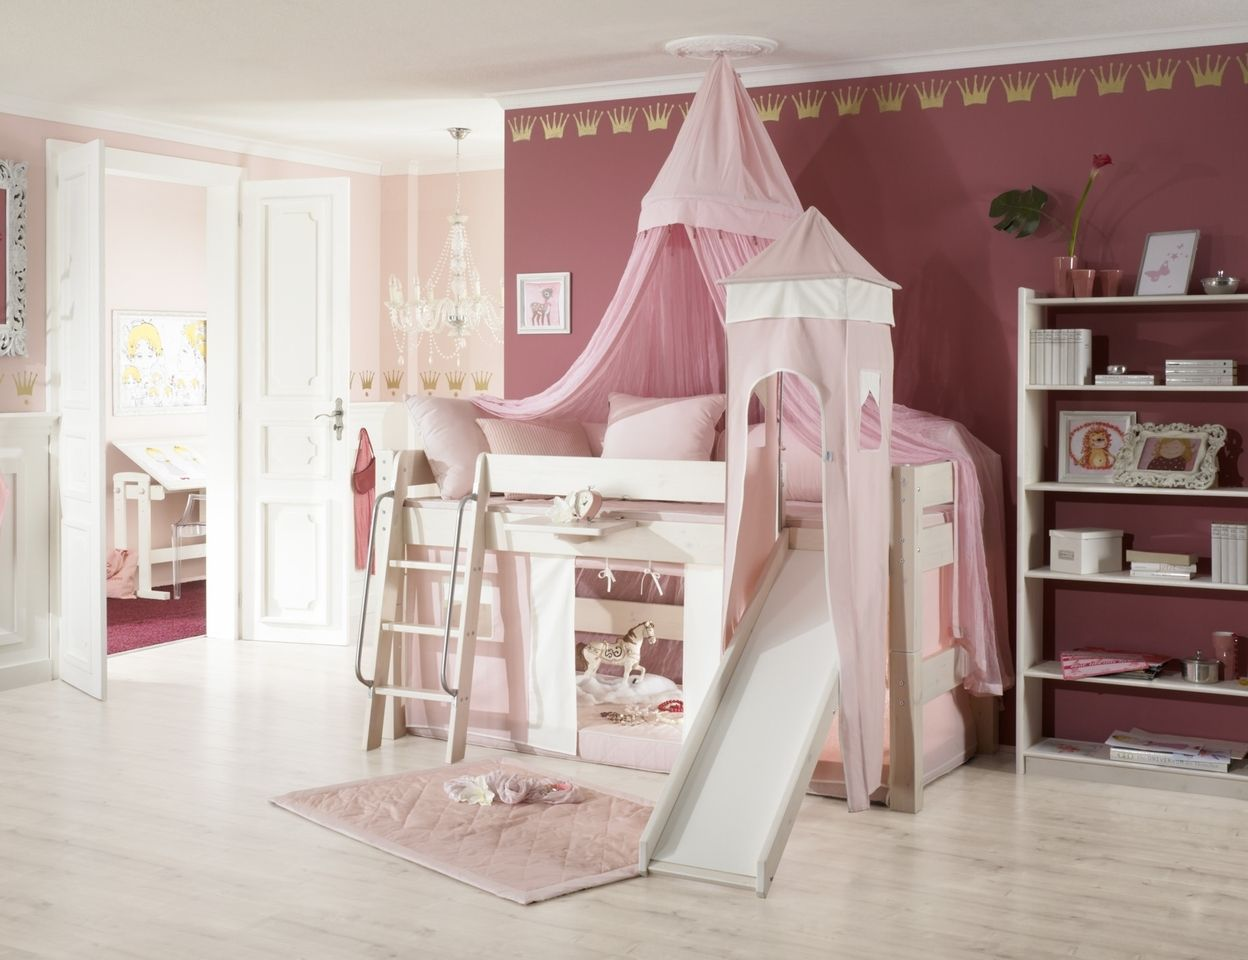 prinzessinnen hochbett mit rutsche weiss rosa kids room pinte. Black Bedroom Furniture Sets. Home Design Ideas